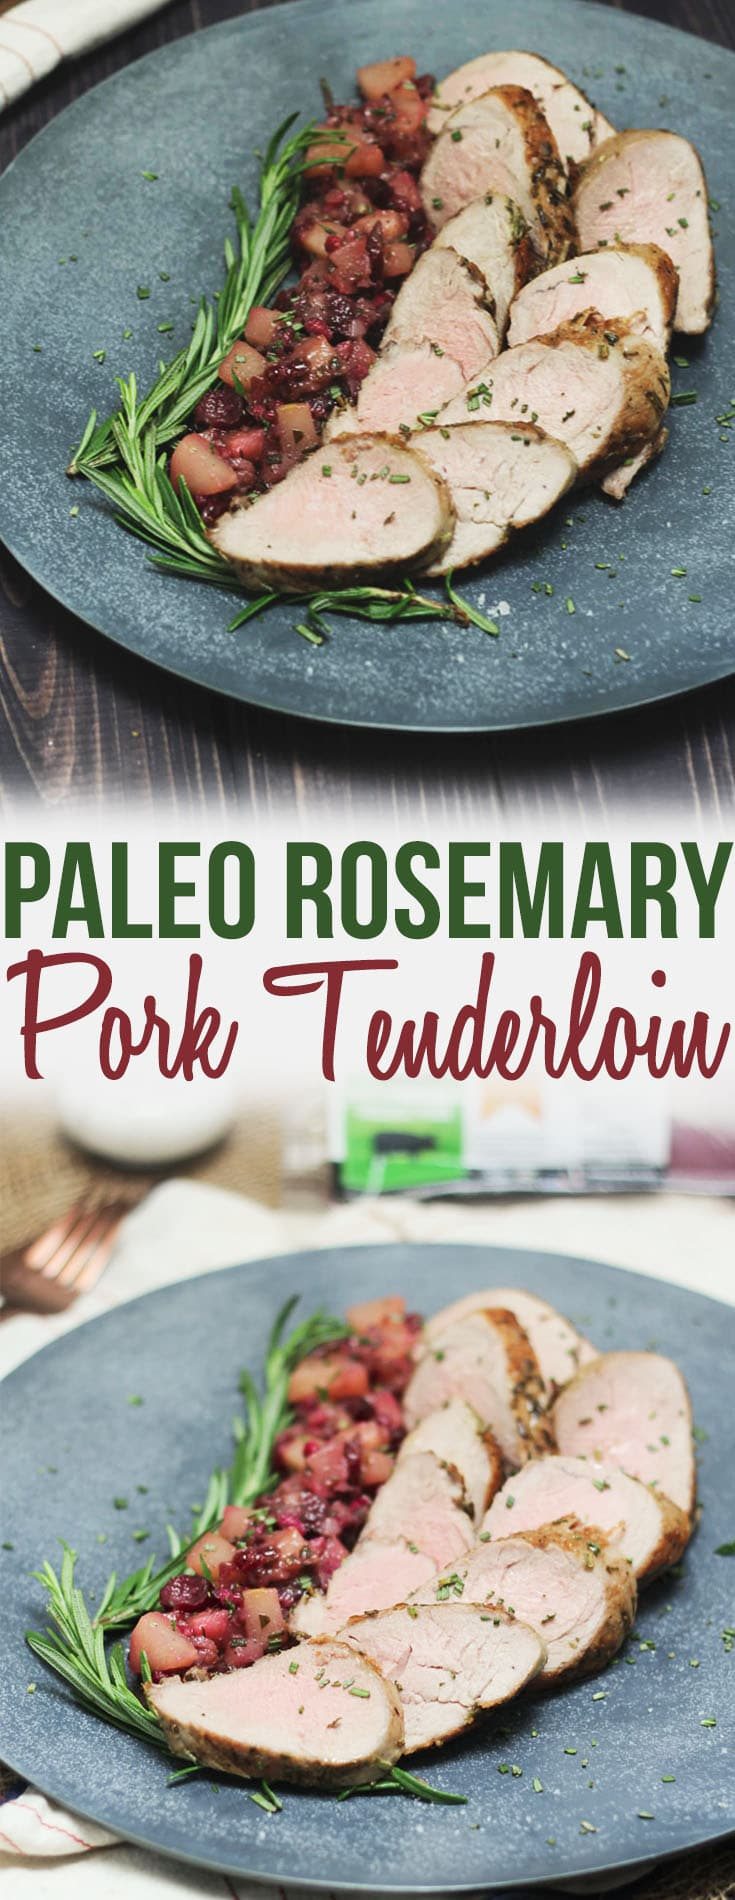 Pork tenderloin is the tenderest cut for pork. A loin, pork or roast will be tougher and less successful in marinating. So, go with a pork tenderloin and slice it as medallions when serving.